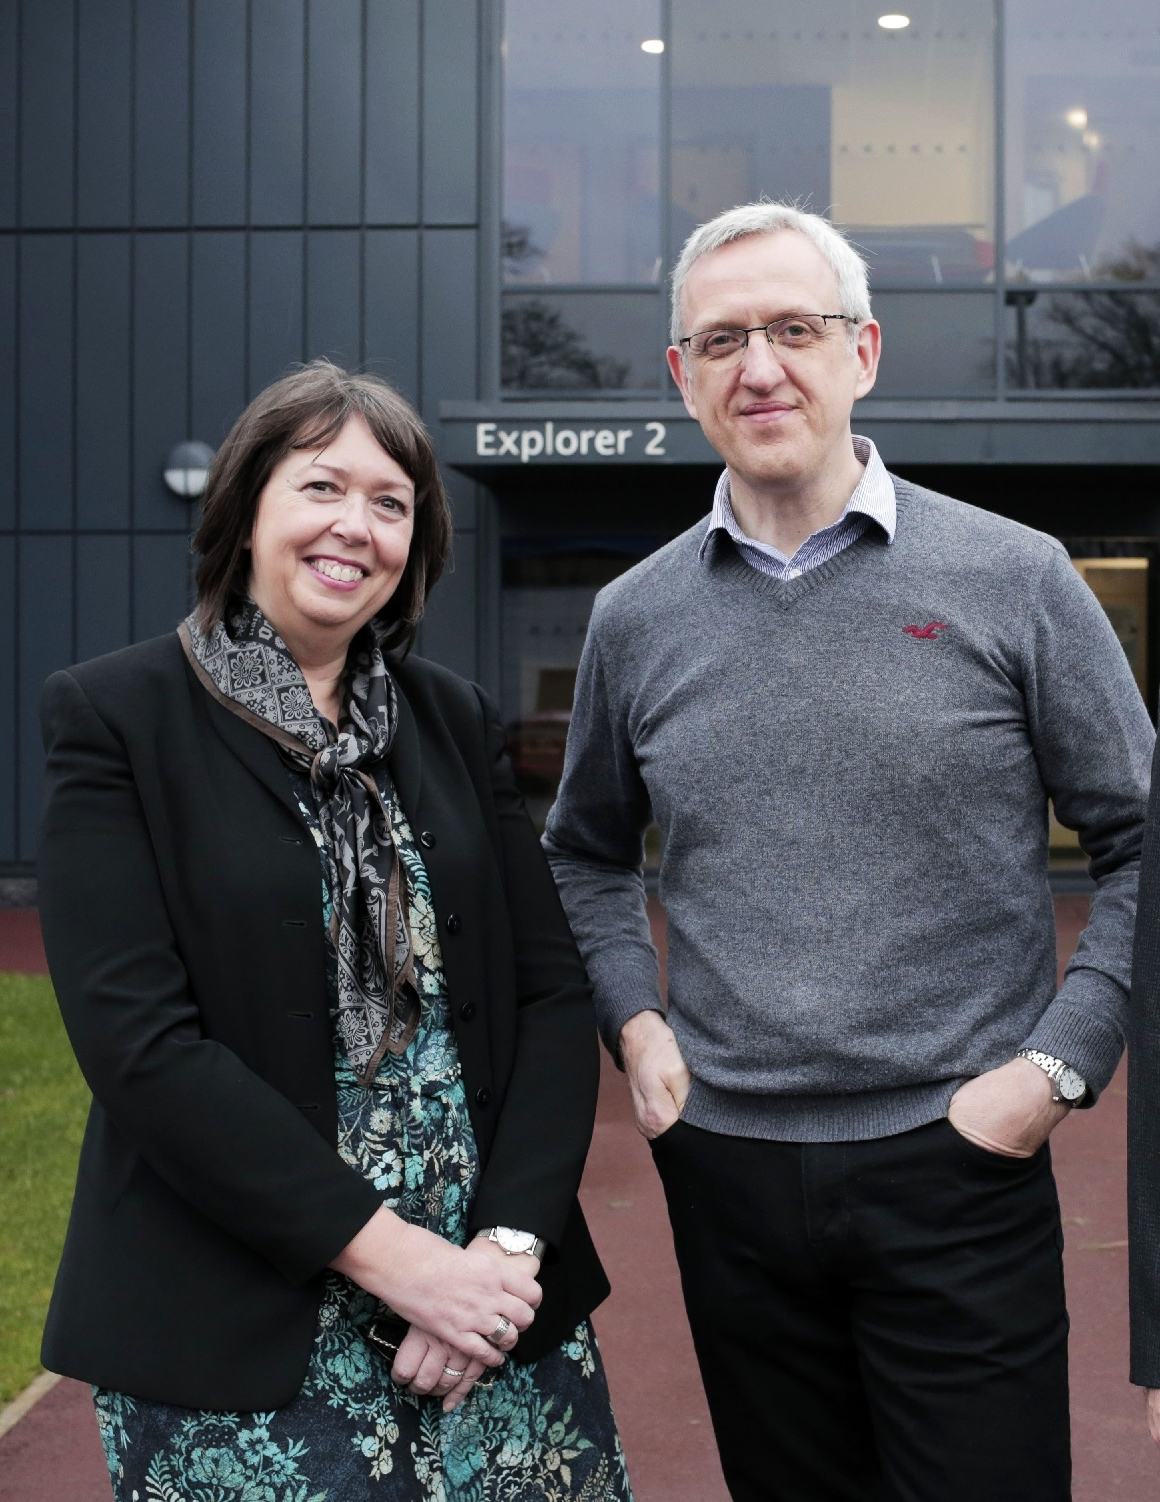 Janet Todd of Business Durham with Paul Usher of Quorum